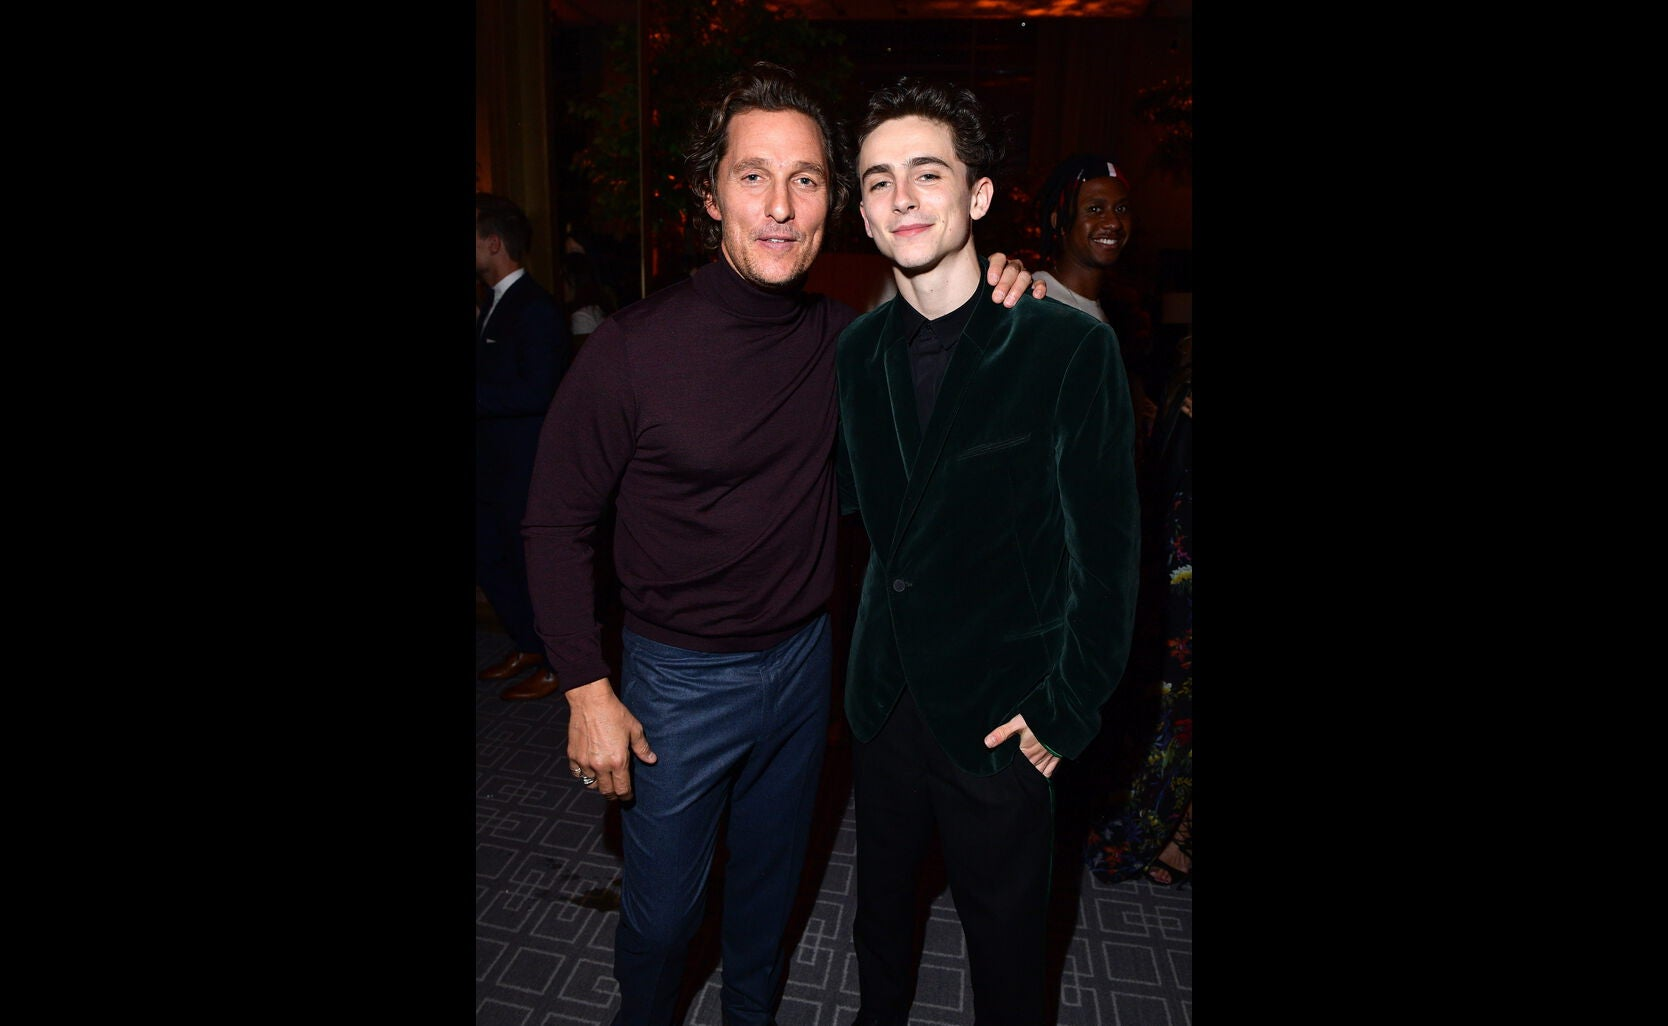 Matthew McConaughey and Timothee Chalamet